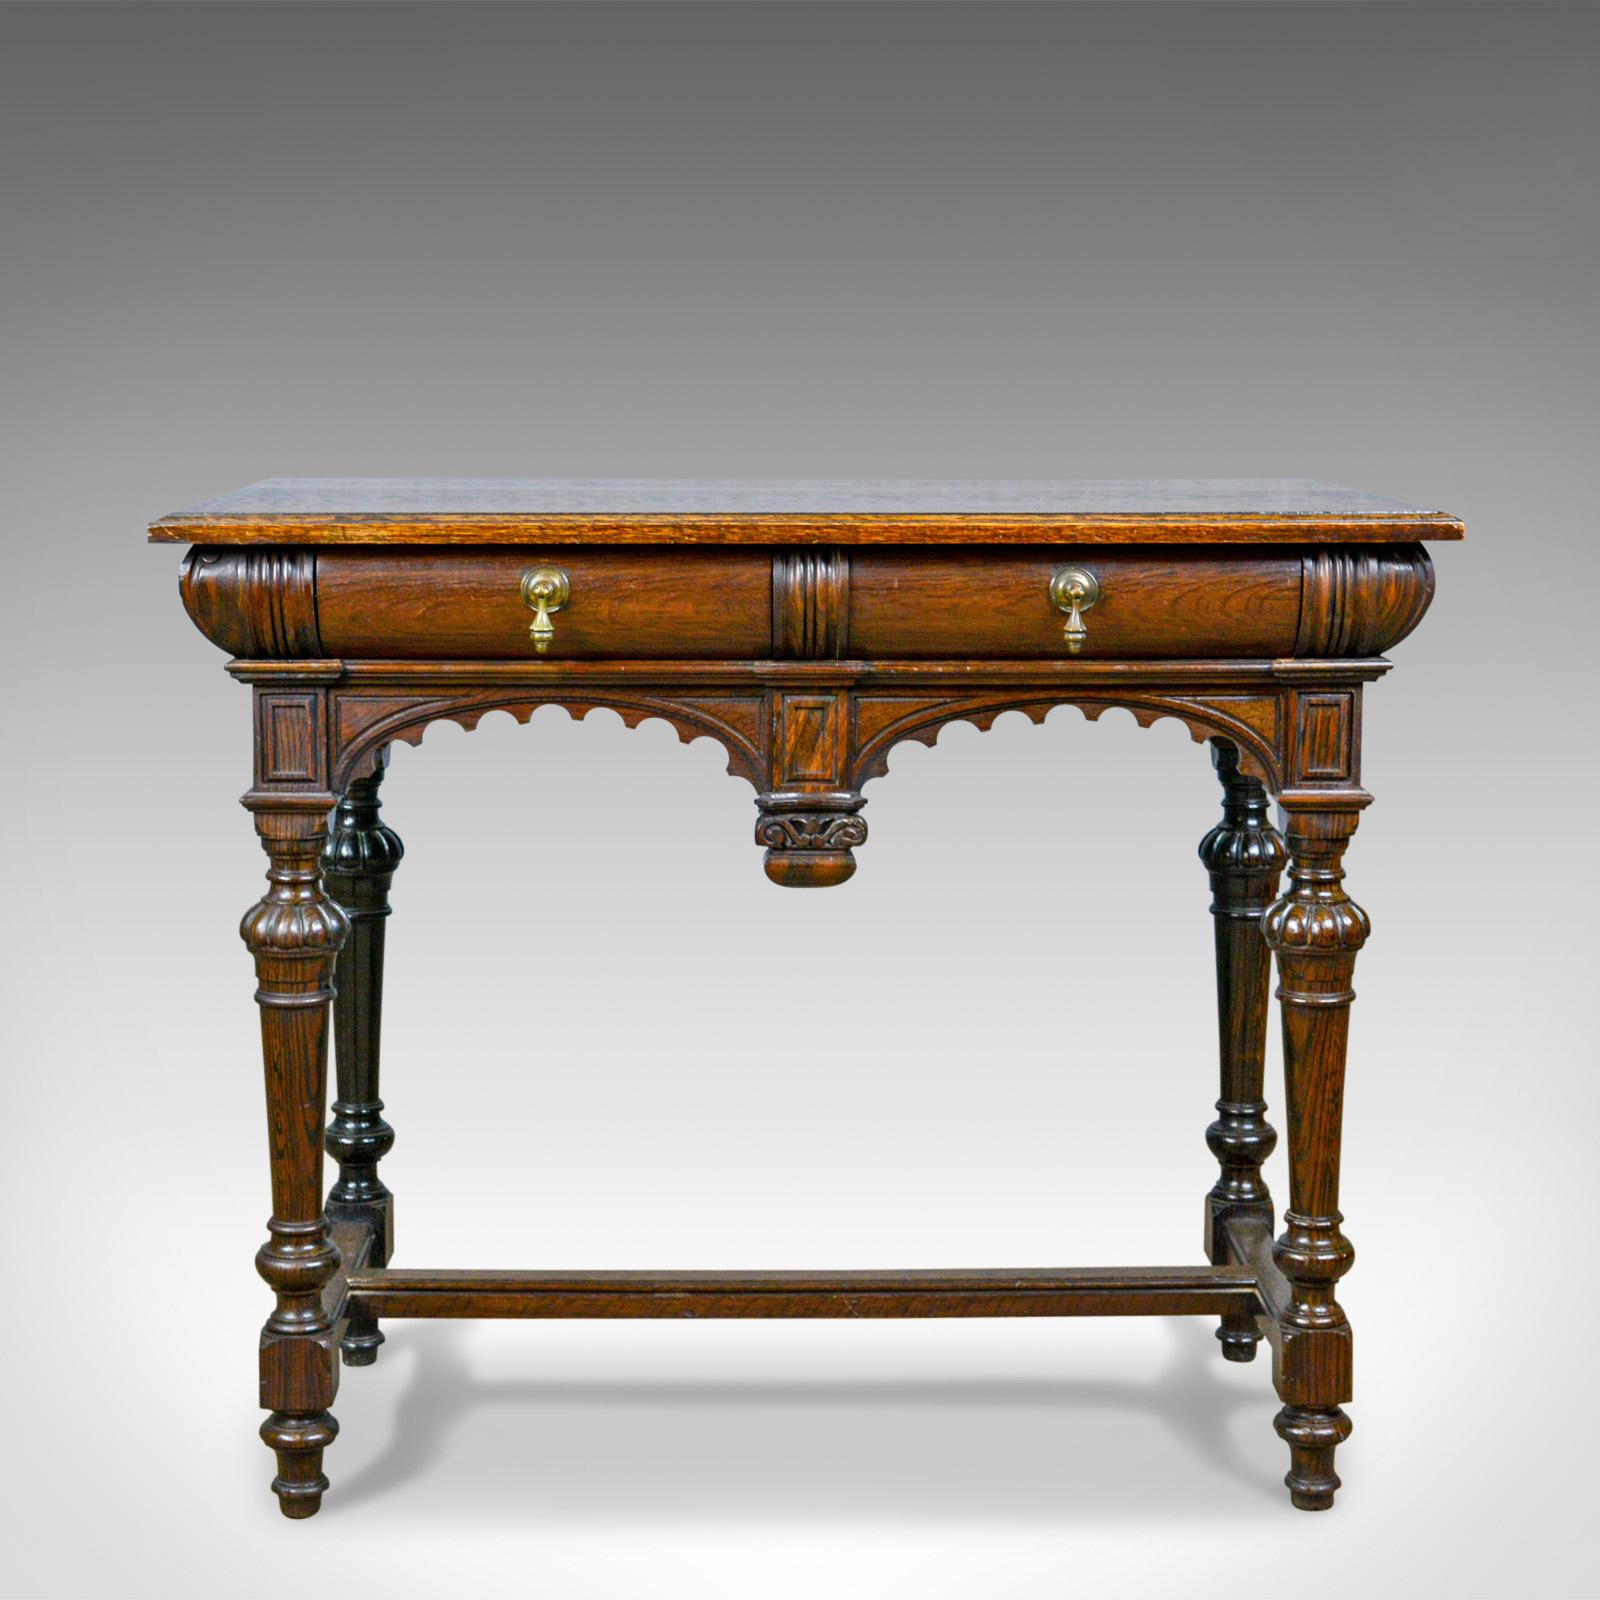 Charmant Antique Console Table, Irish, Oak, Side, Carved, Late 19th Century, Circa  1880